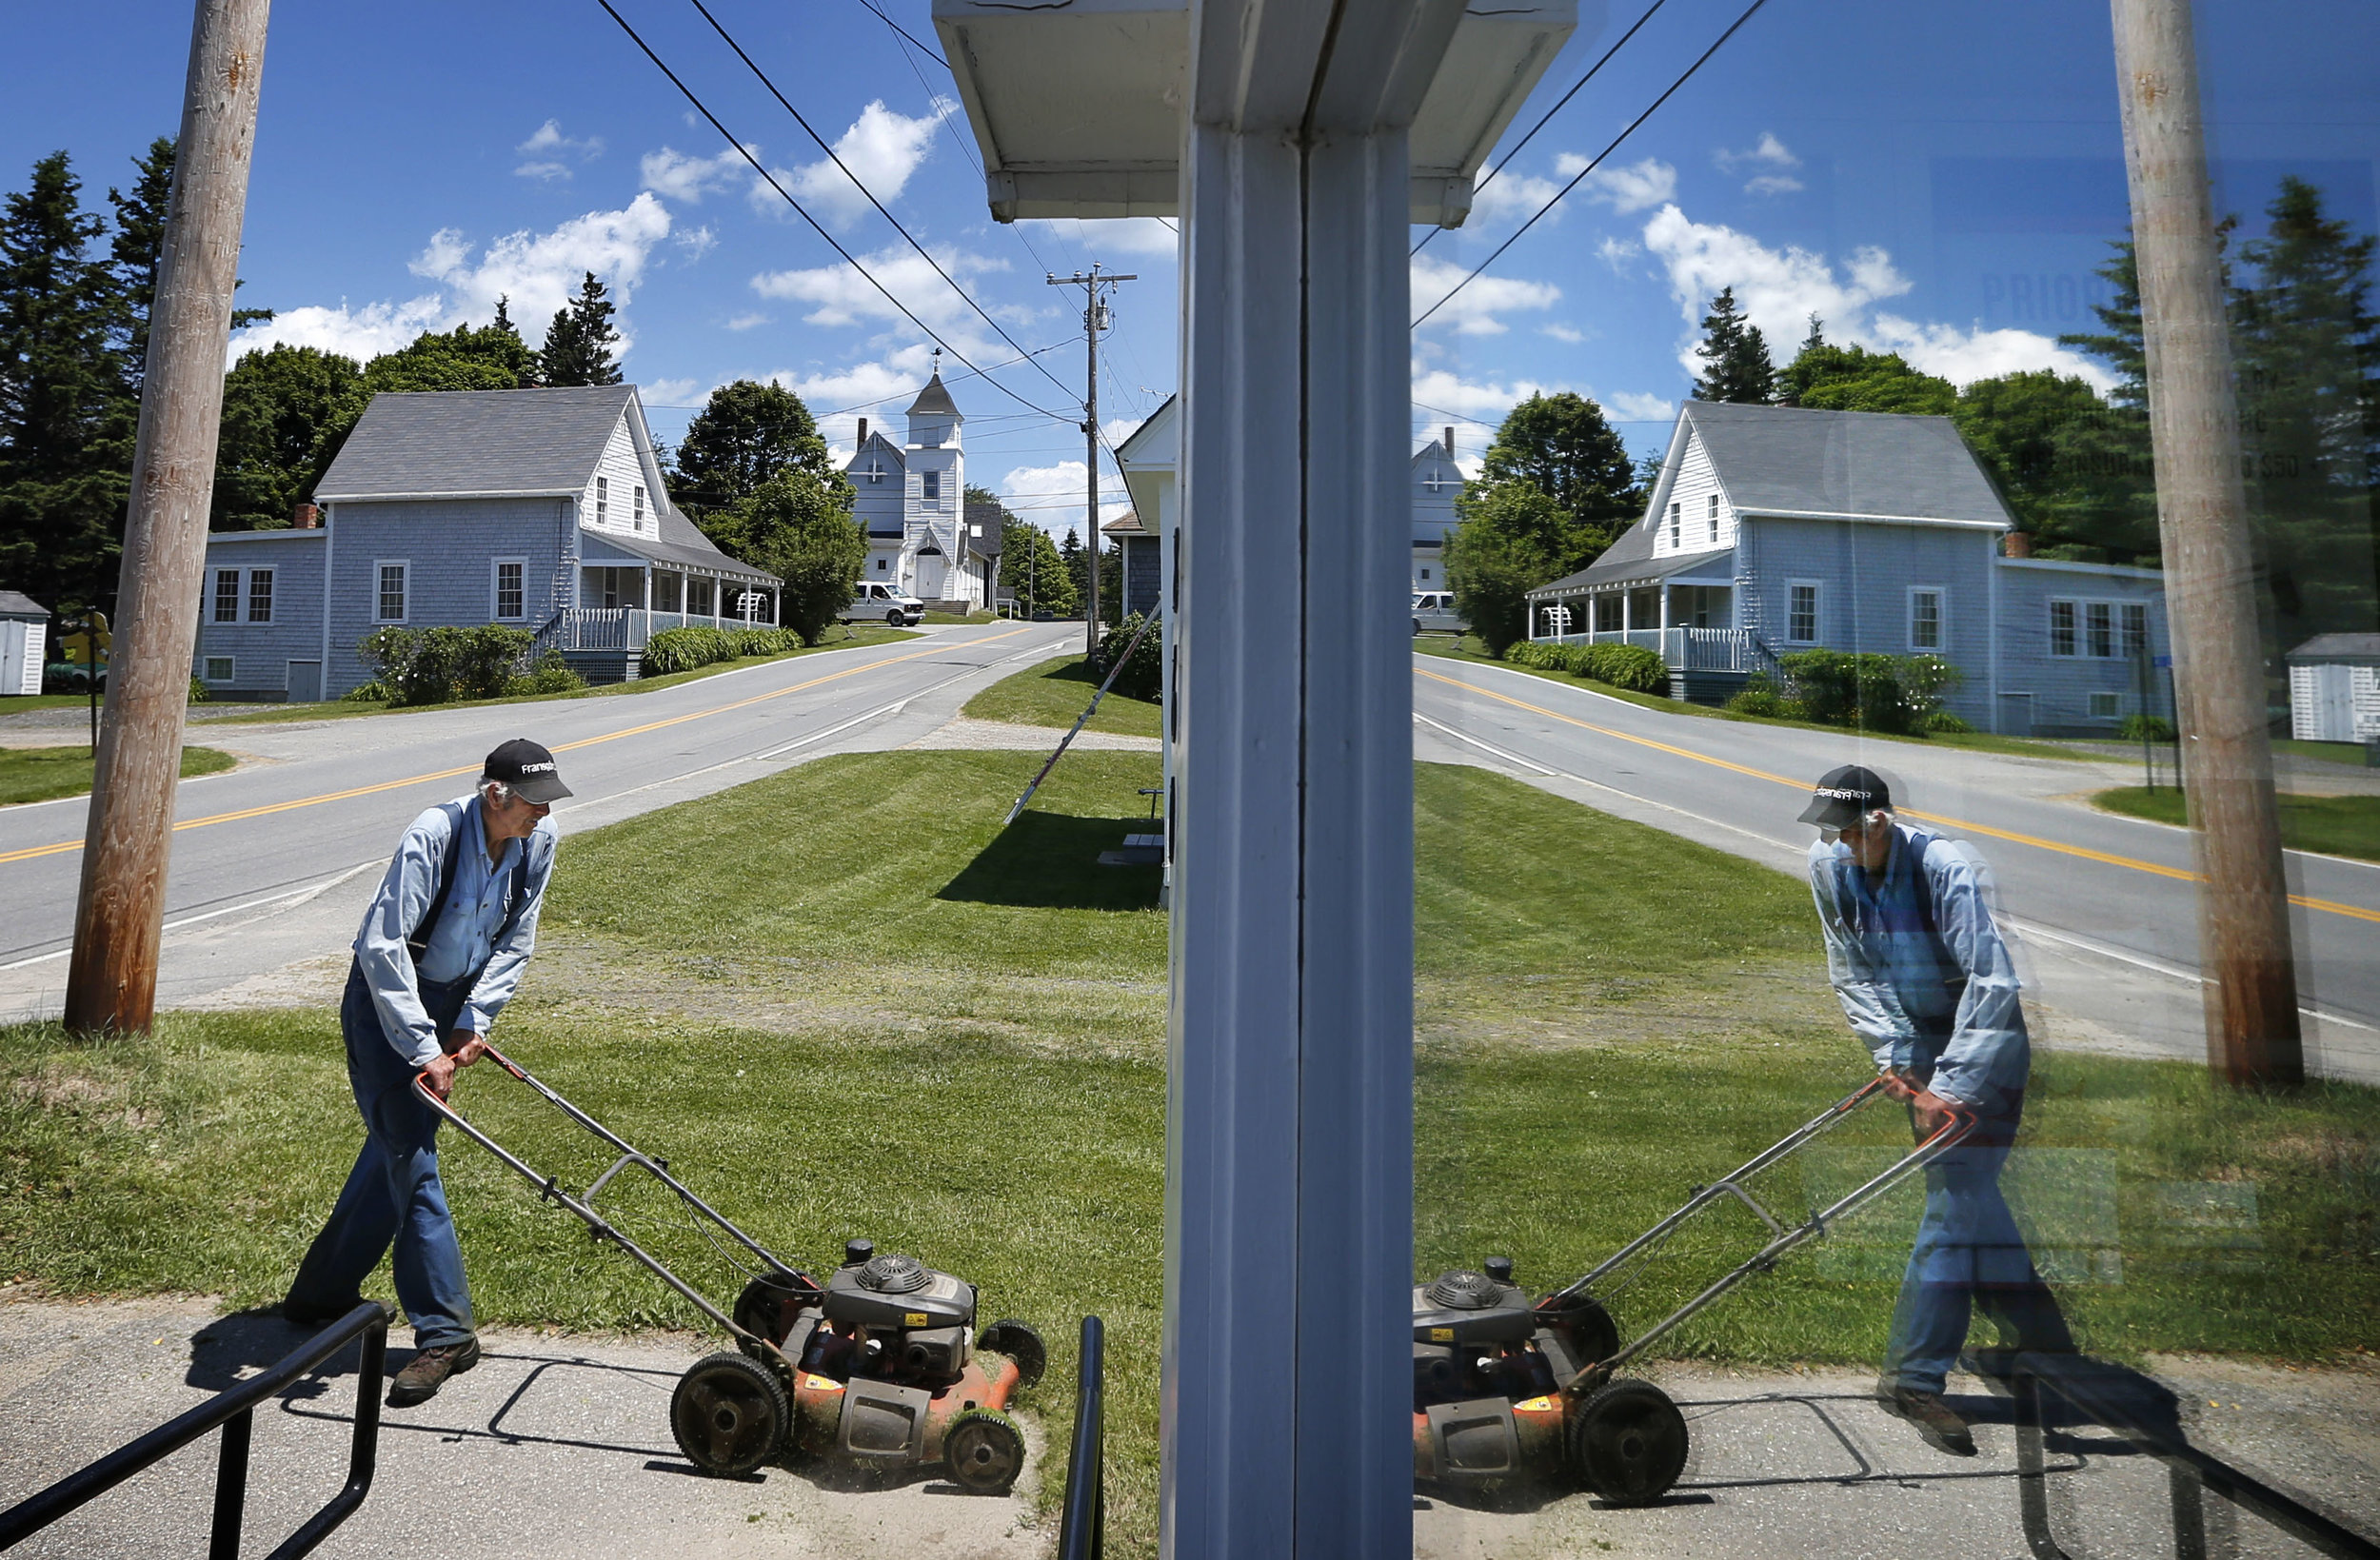 Ralph Russell, 76, is reflected in the front window of the post office, Thursday, June 19, 2014, in Port Clyde, Maine, where he has been cutting the lawn for almost 40 years. (AP Photo/Robert F. Bukaty)